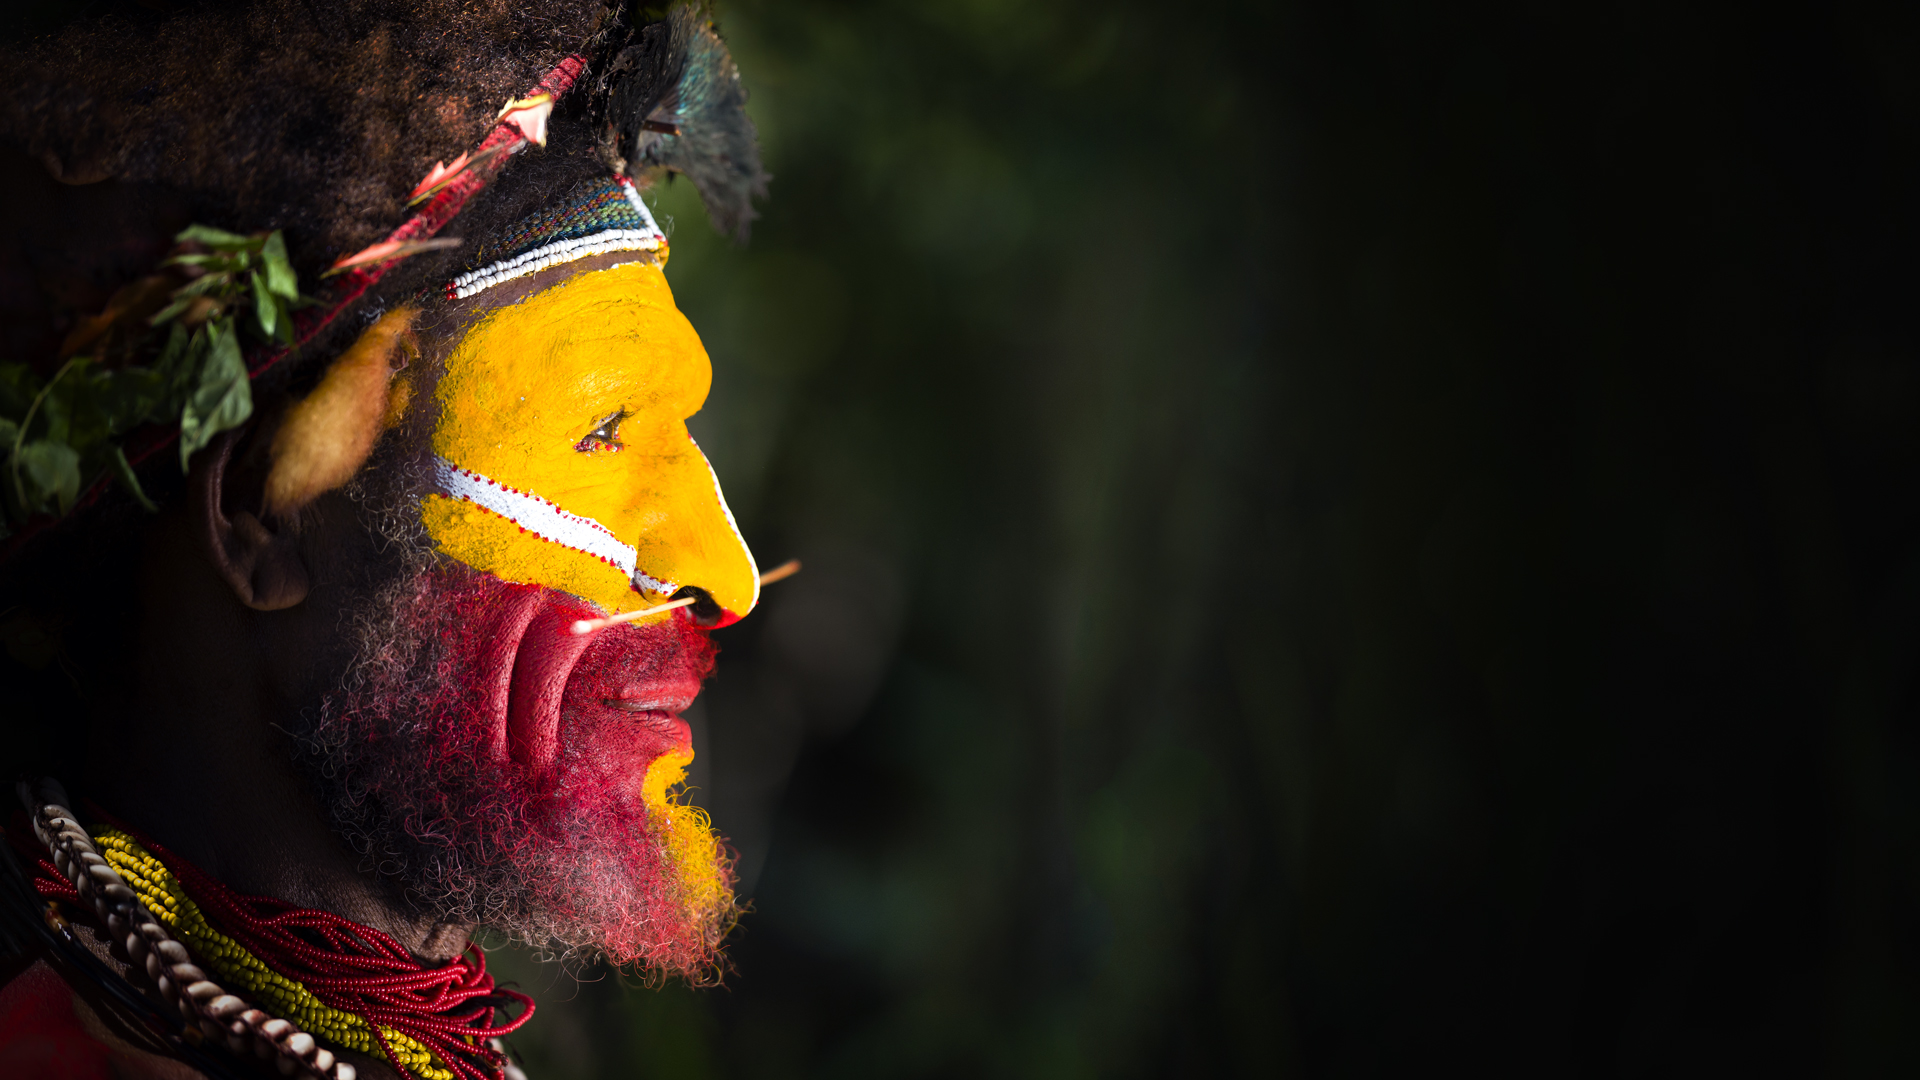 Adventures in Photography Papua New Guinea with Chris McLennan 1920x1080